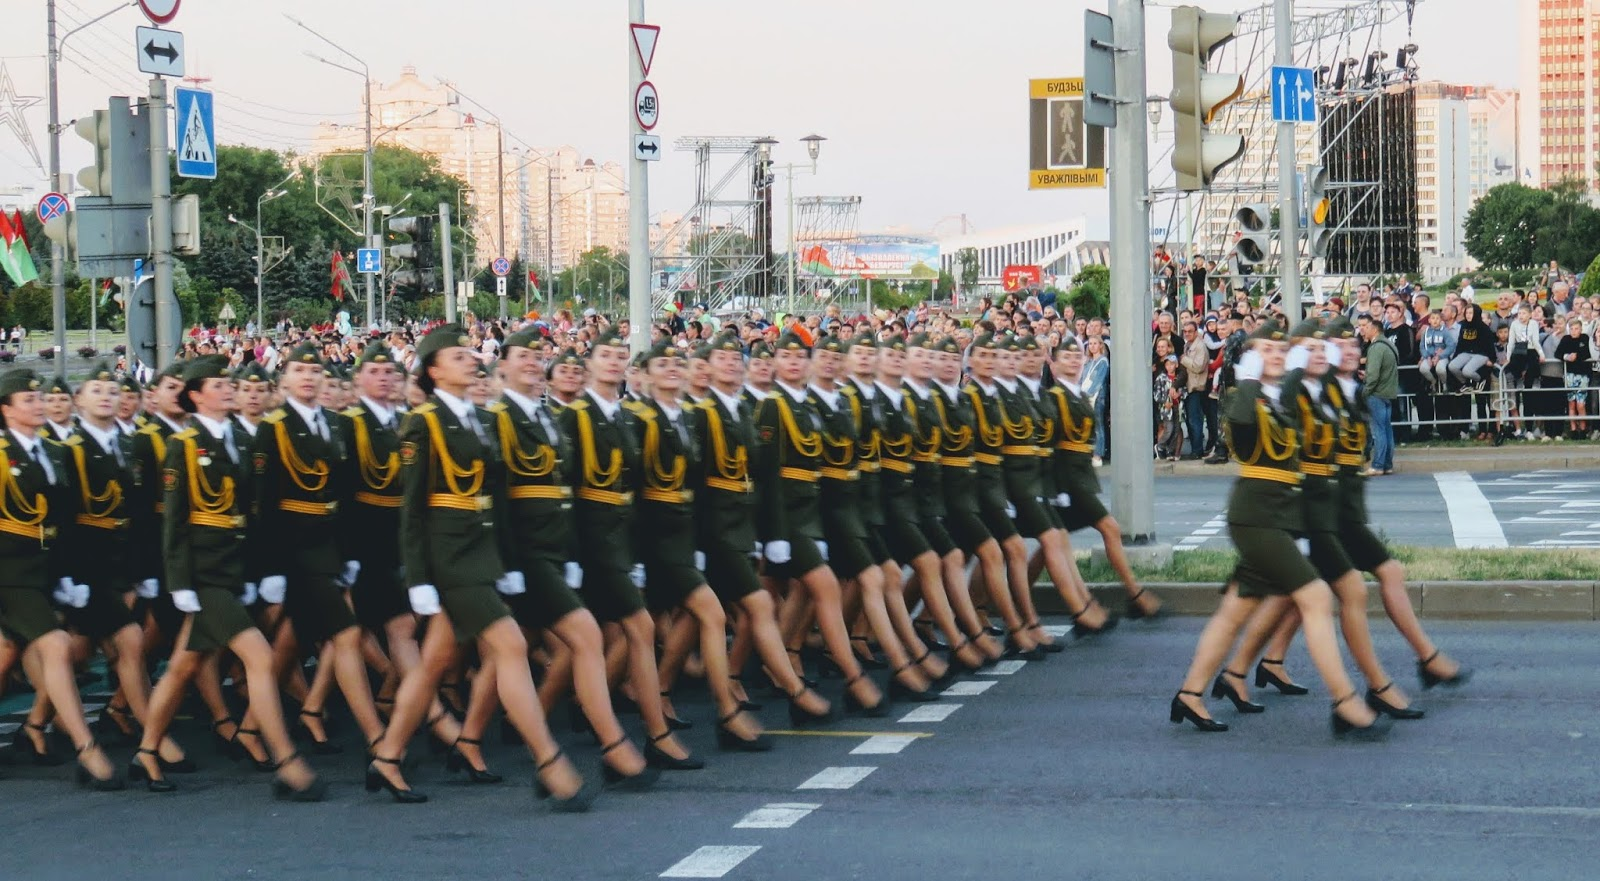 Russian Female Troops - Parade in Minsk